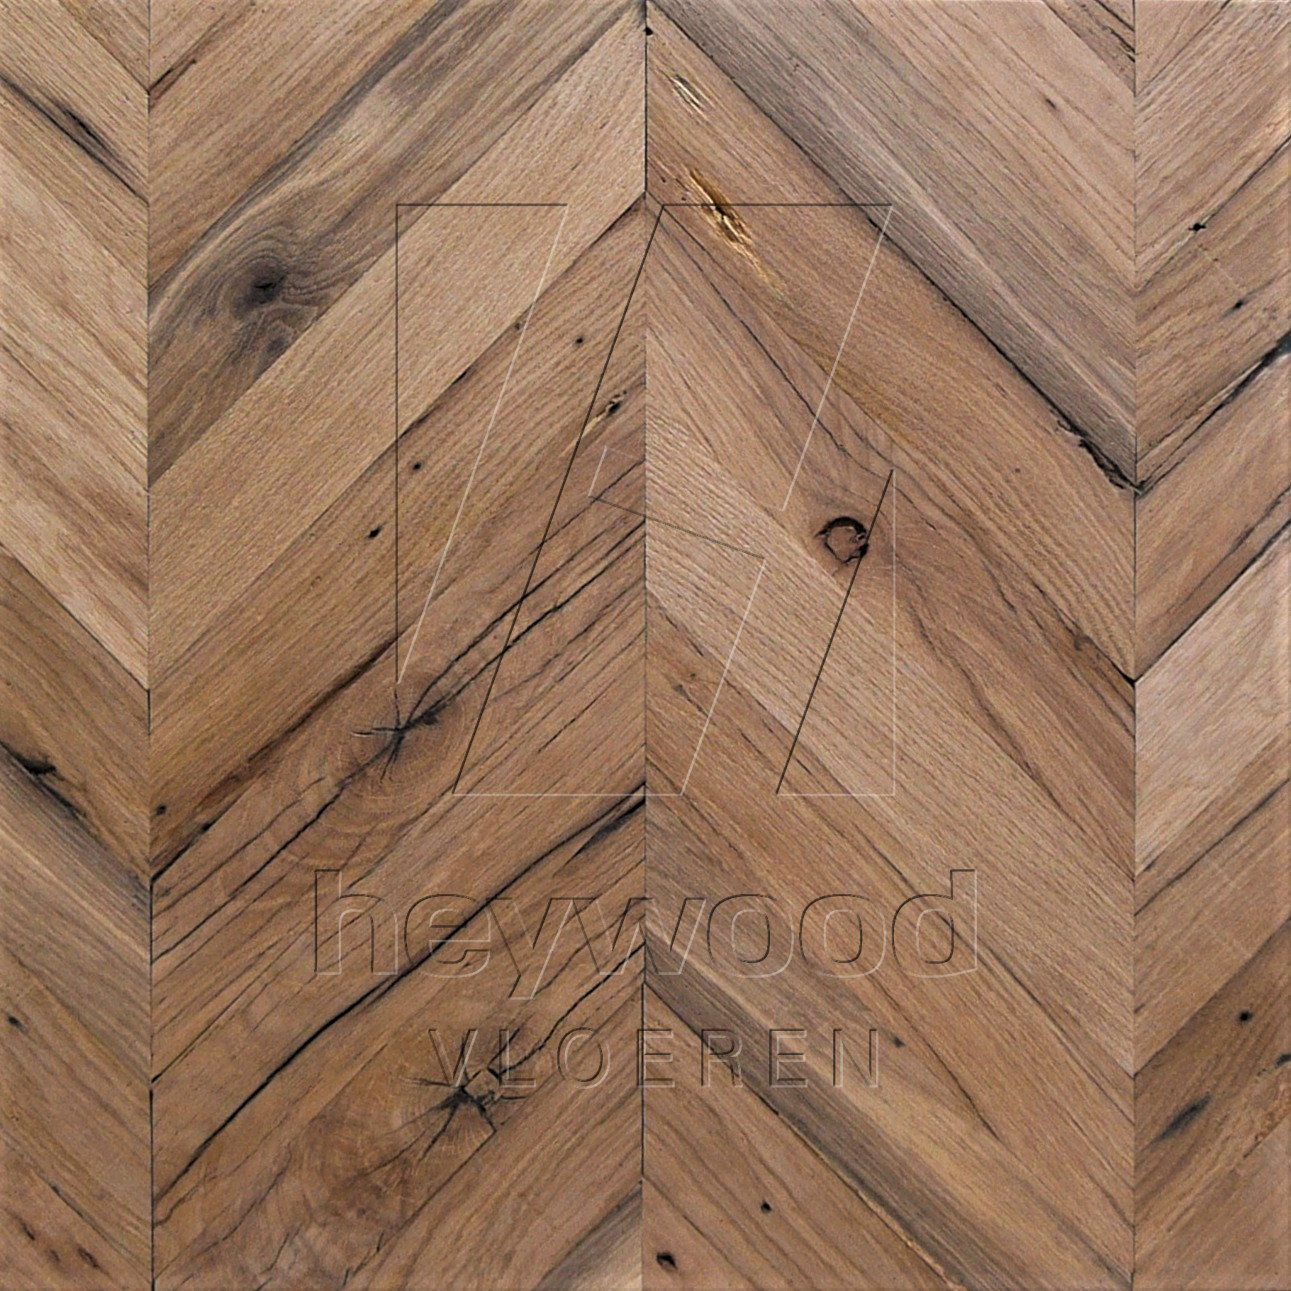 Reclaimed Chevron 'Provence' (unoiled) in Pattern & Panels (Outsides / Insides) of Old Reclaimed Wood